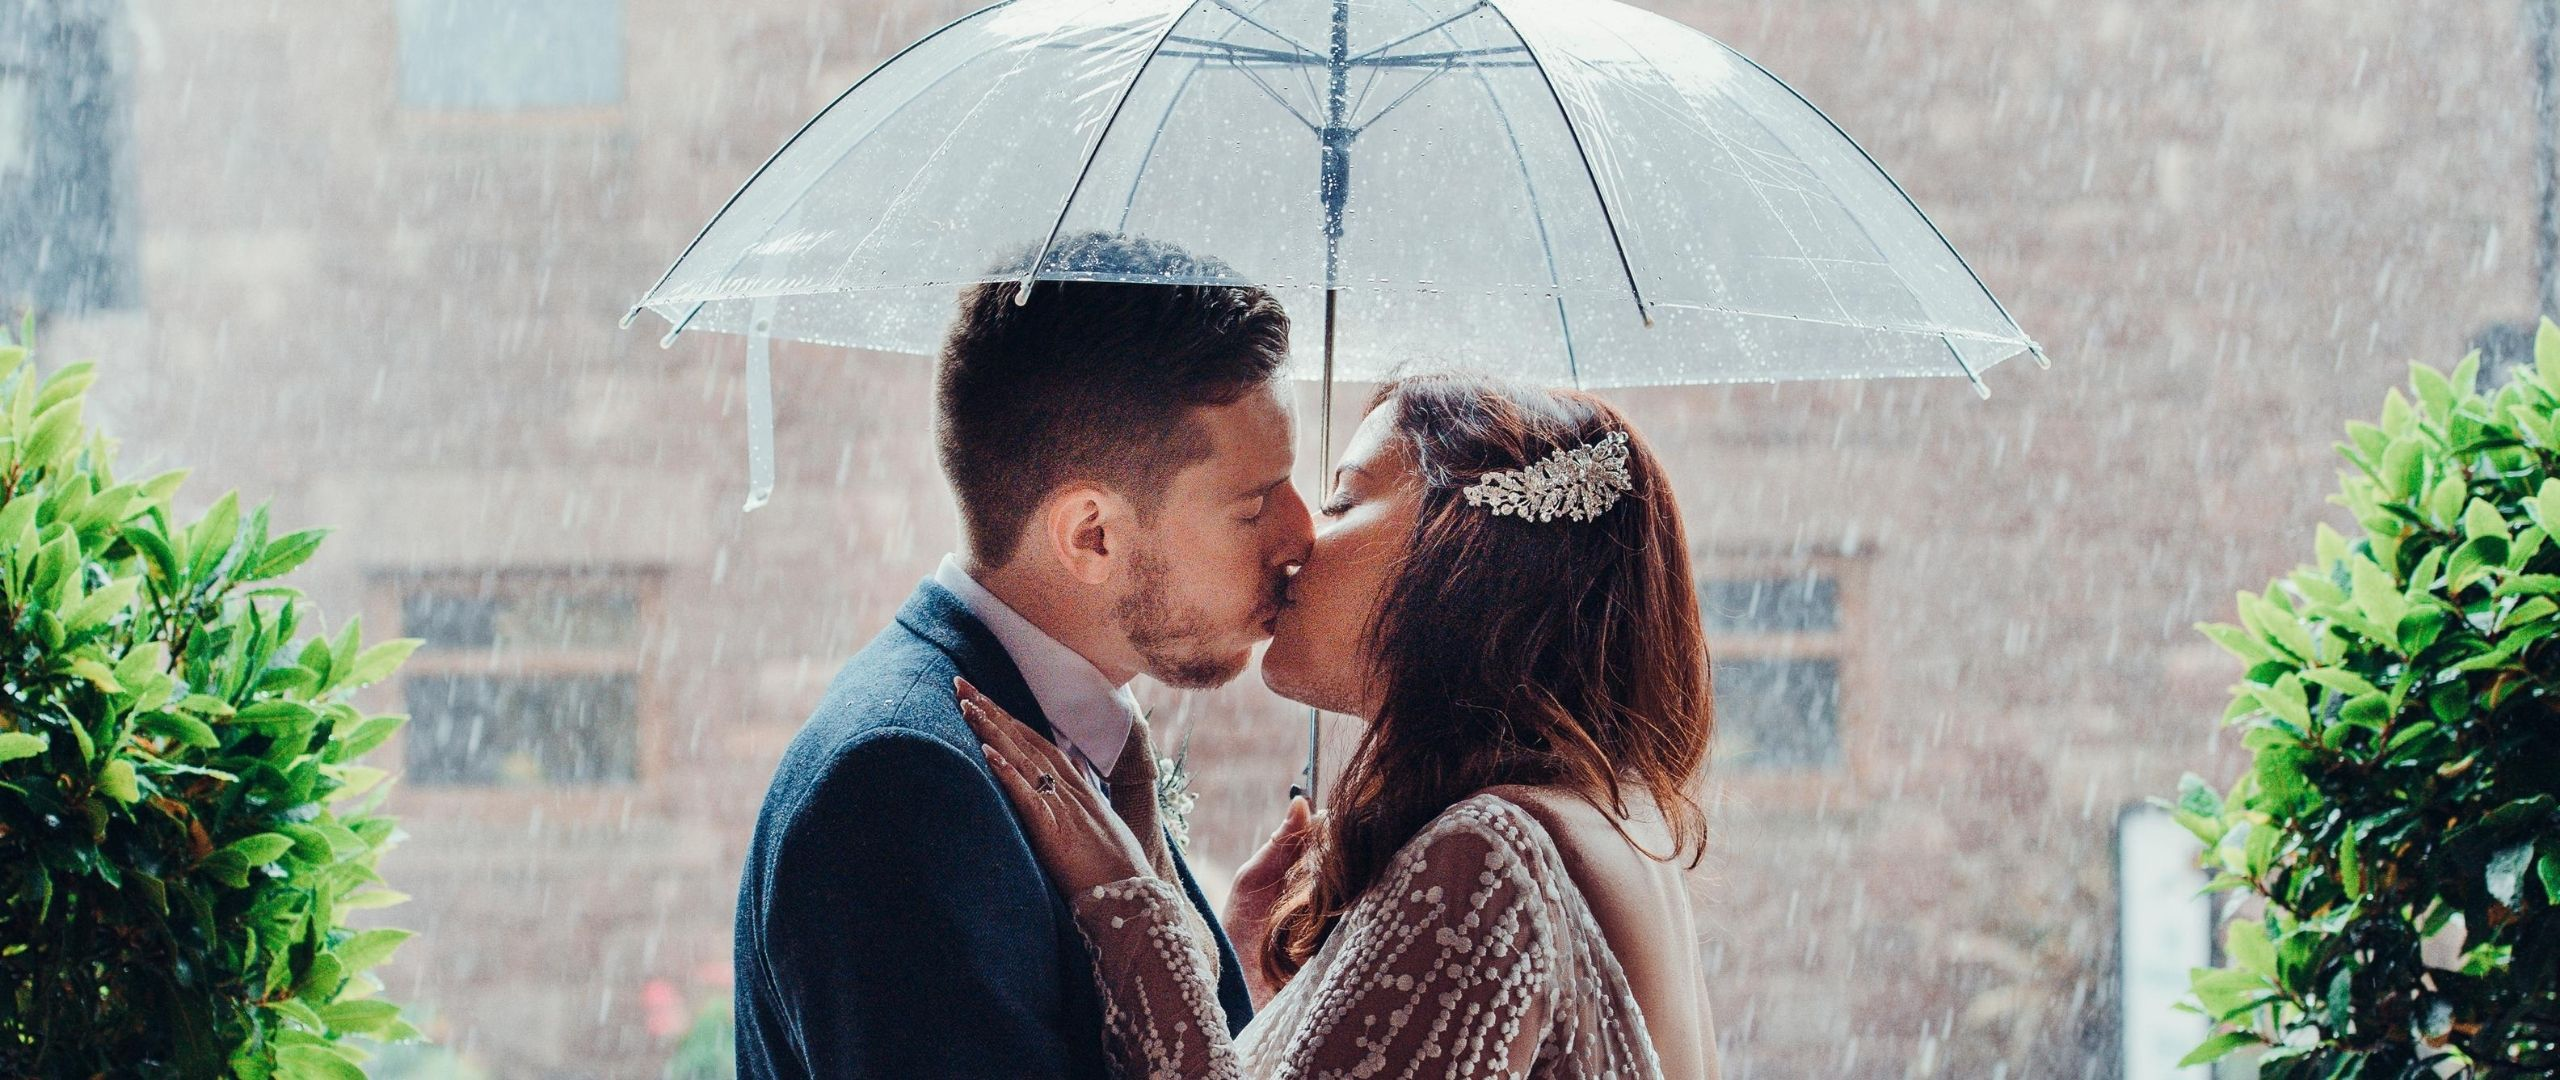 Even heavy rain couldn't stop Rachael and Lee having a perfect day!